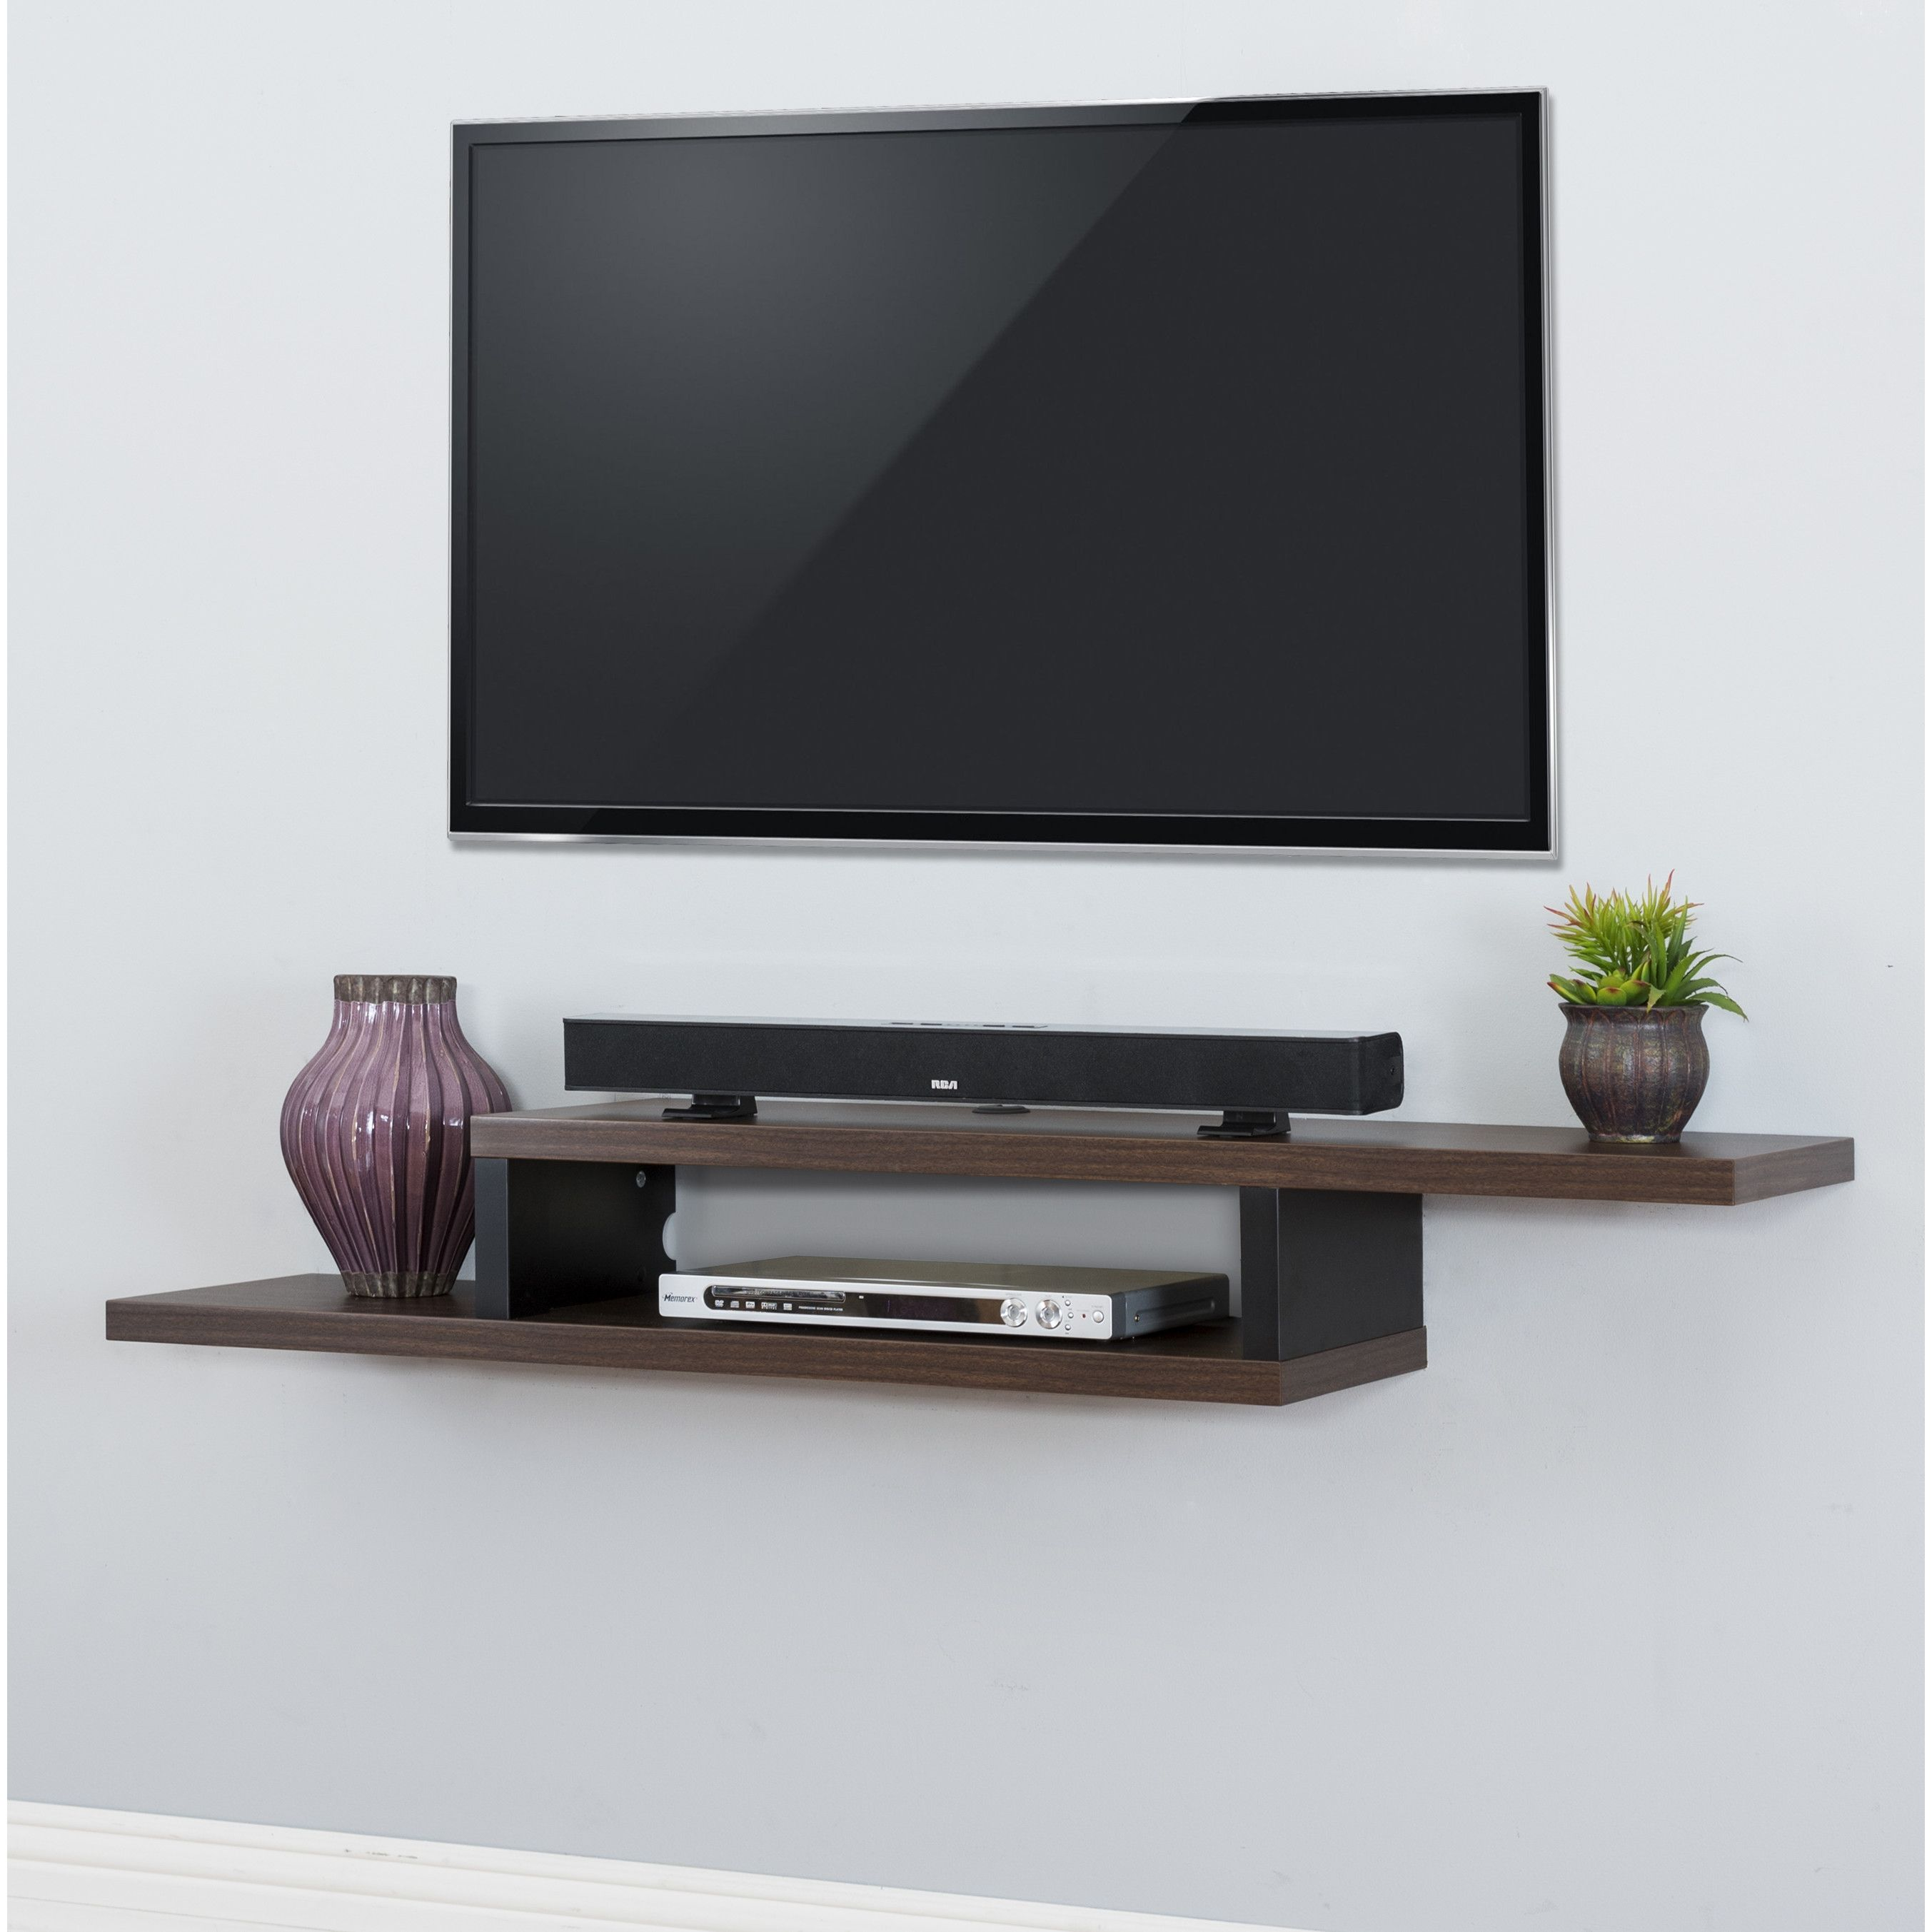 Ideas Wall Shelves Design Couture Wall Mounted Shelves For Components Regarding Sizing 2706 X 2706 Wall Mount Tv Shelf Wall Mounted Shelves Wall Mounted Tv